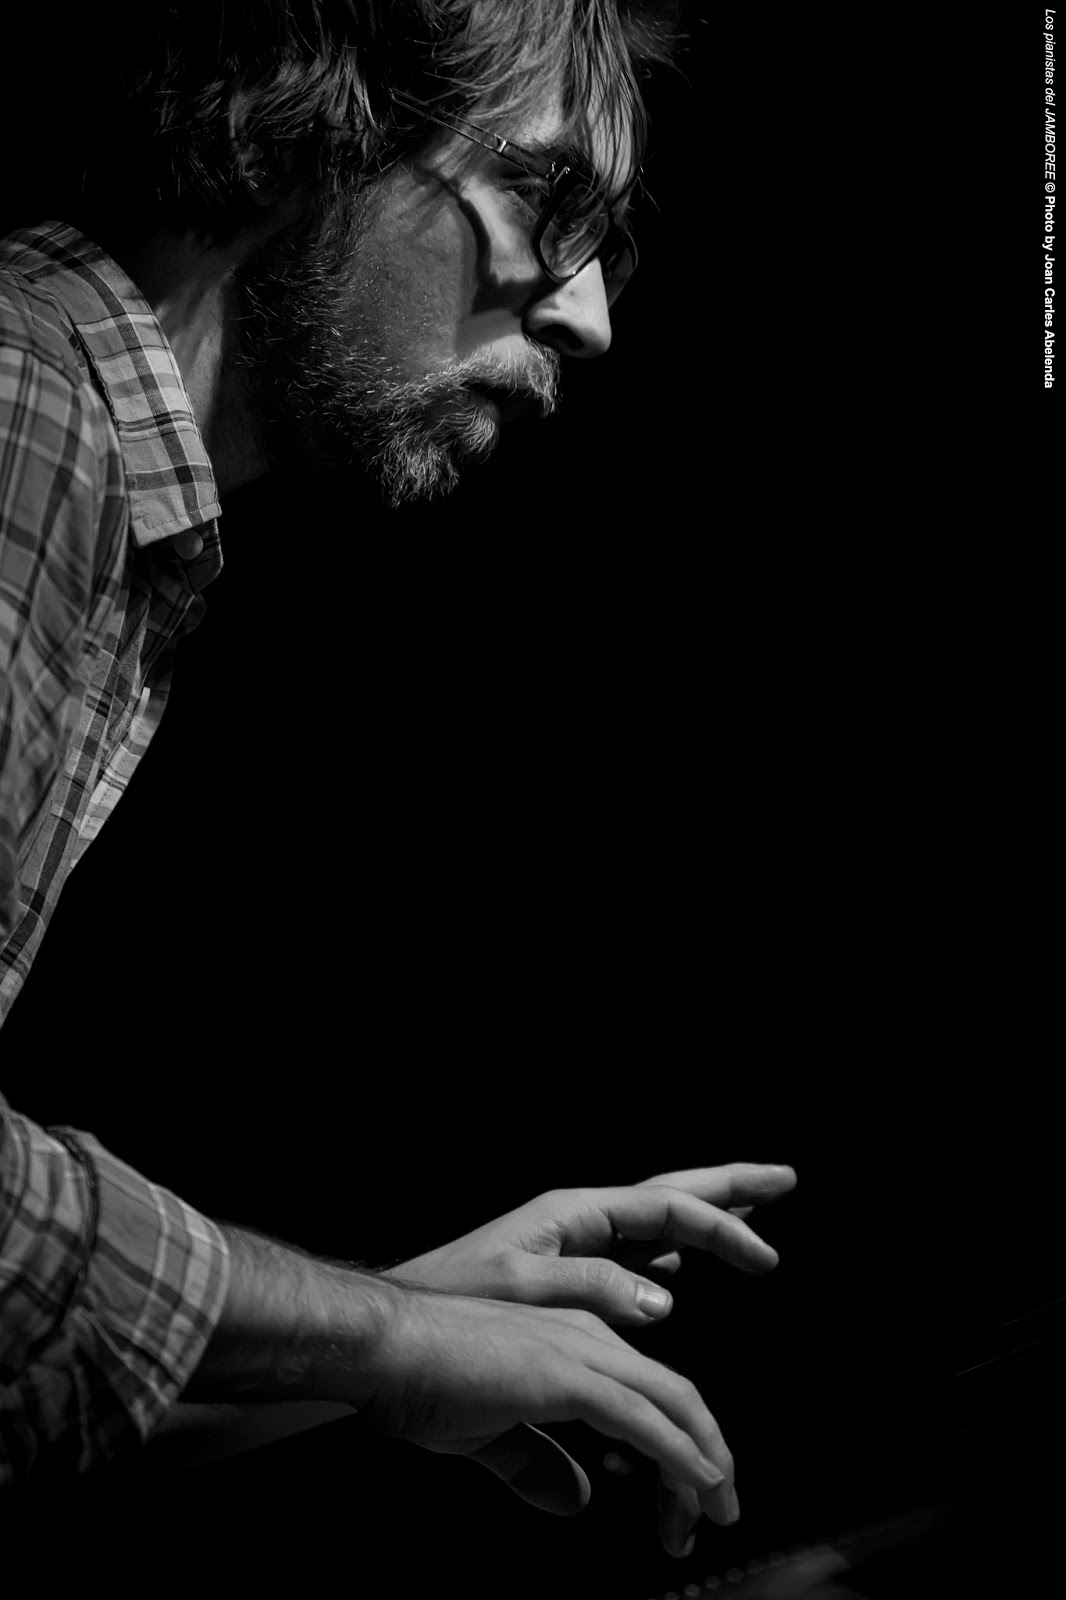 a biography of aaron parks a jazz pianist Home of jazz guitarist mike moreno  personnel: mike moreno-electric and  acoustic guitars, aaron parks, piano, doug weiss-bass, eric harland-drums.